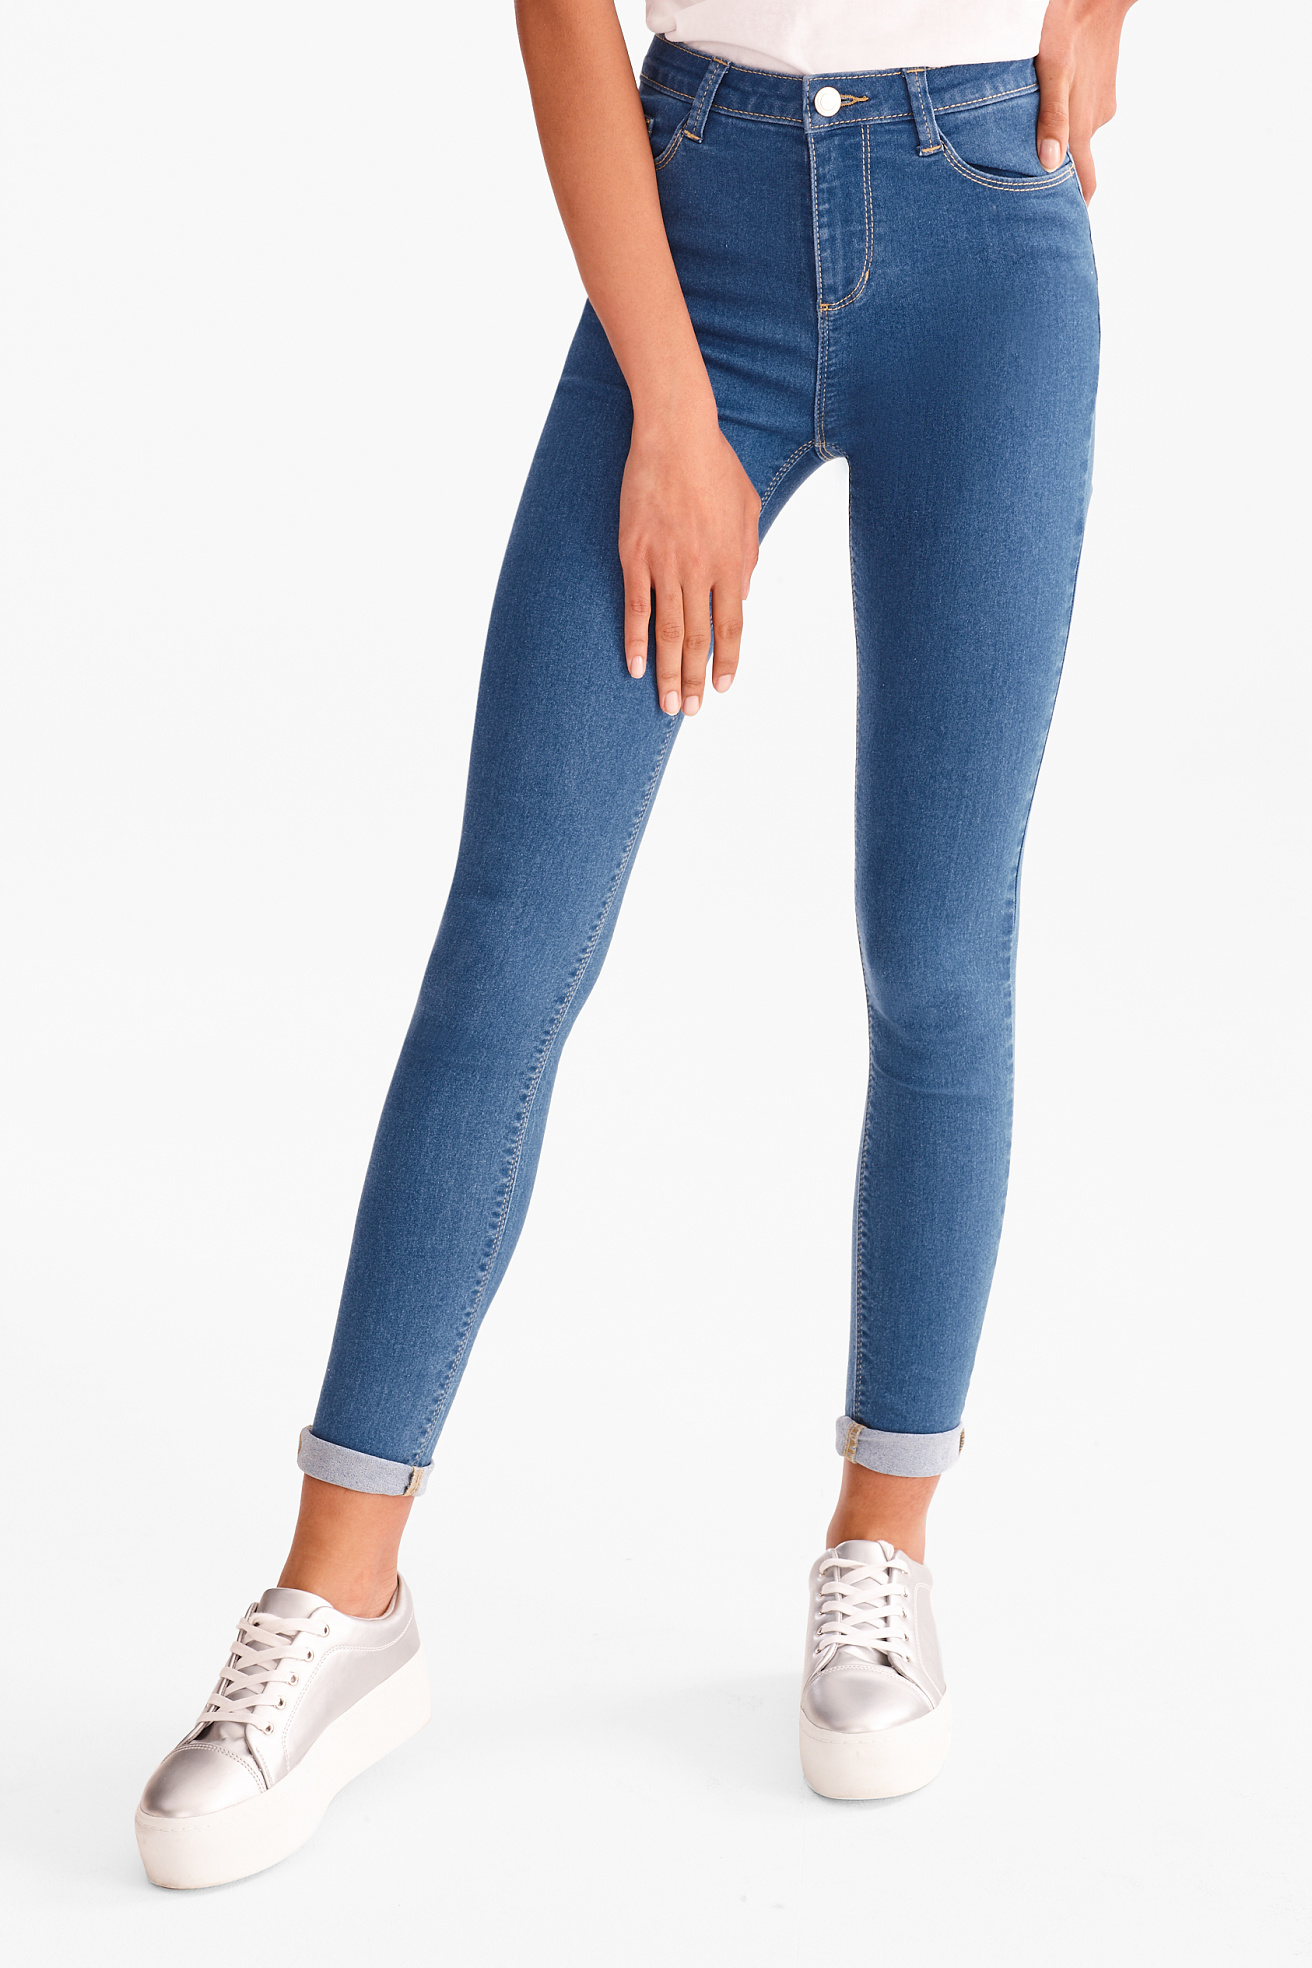 c&a jeans